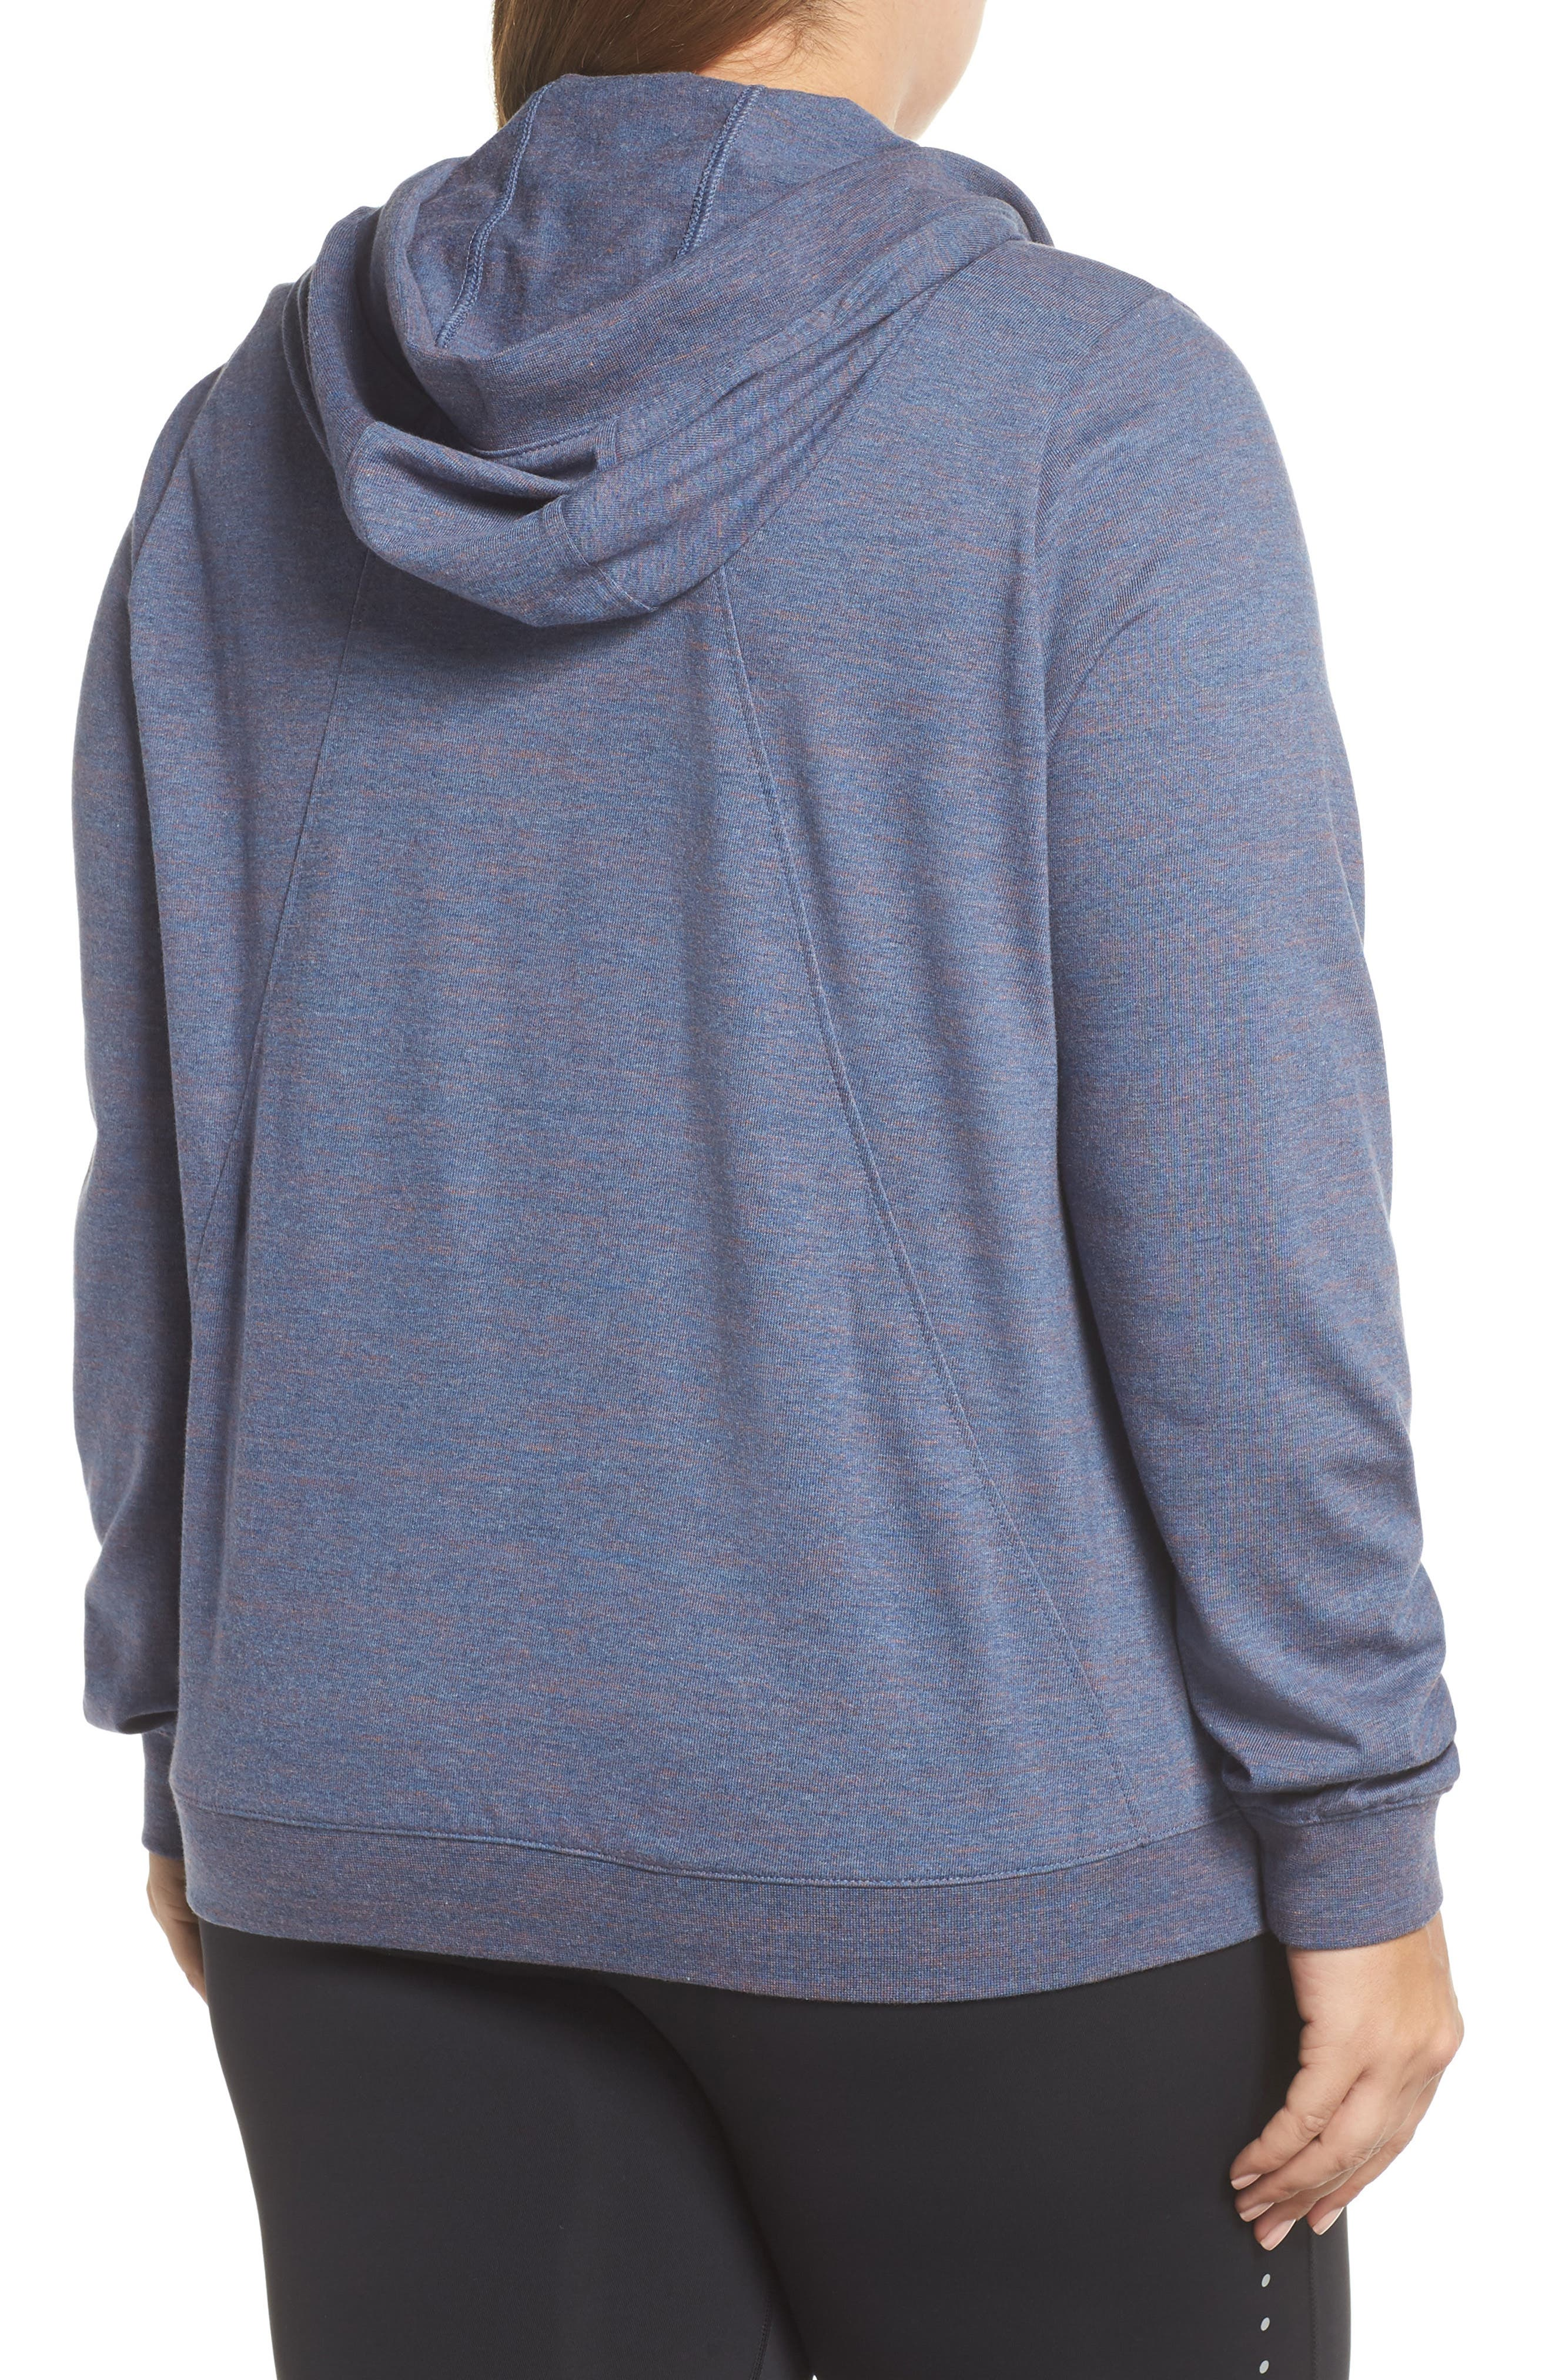 Gym Zip Hoodie,                             Alternate thumbnail 2, color,                             Diffused Blue/ Heather/ Sail